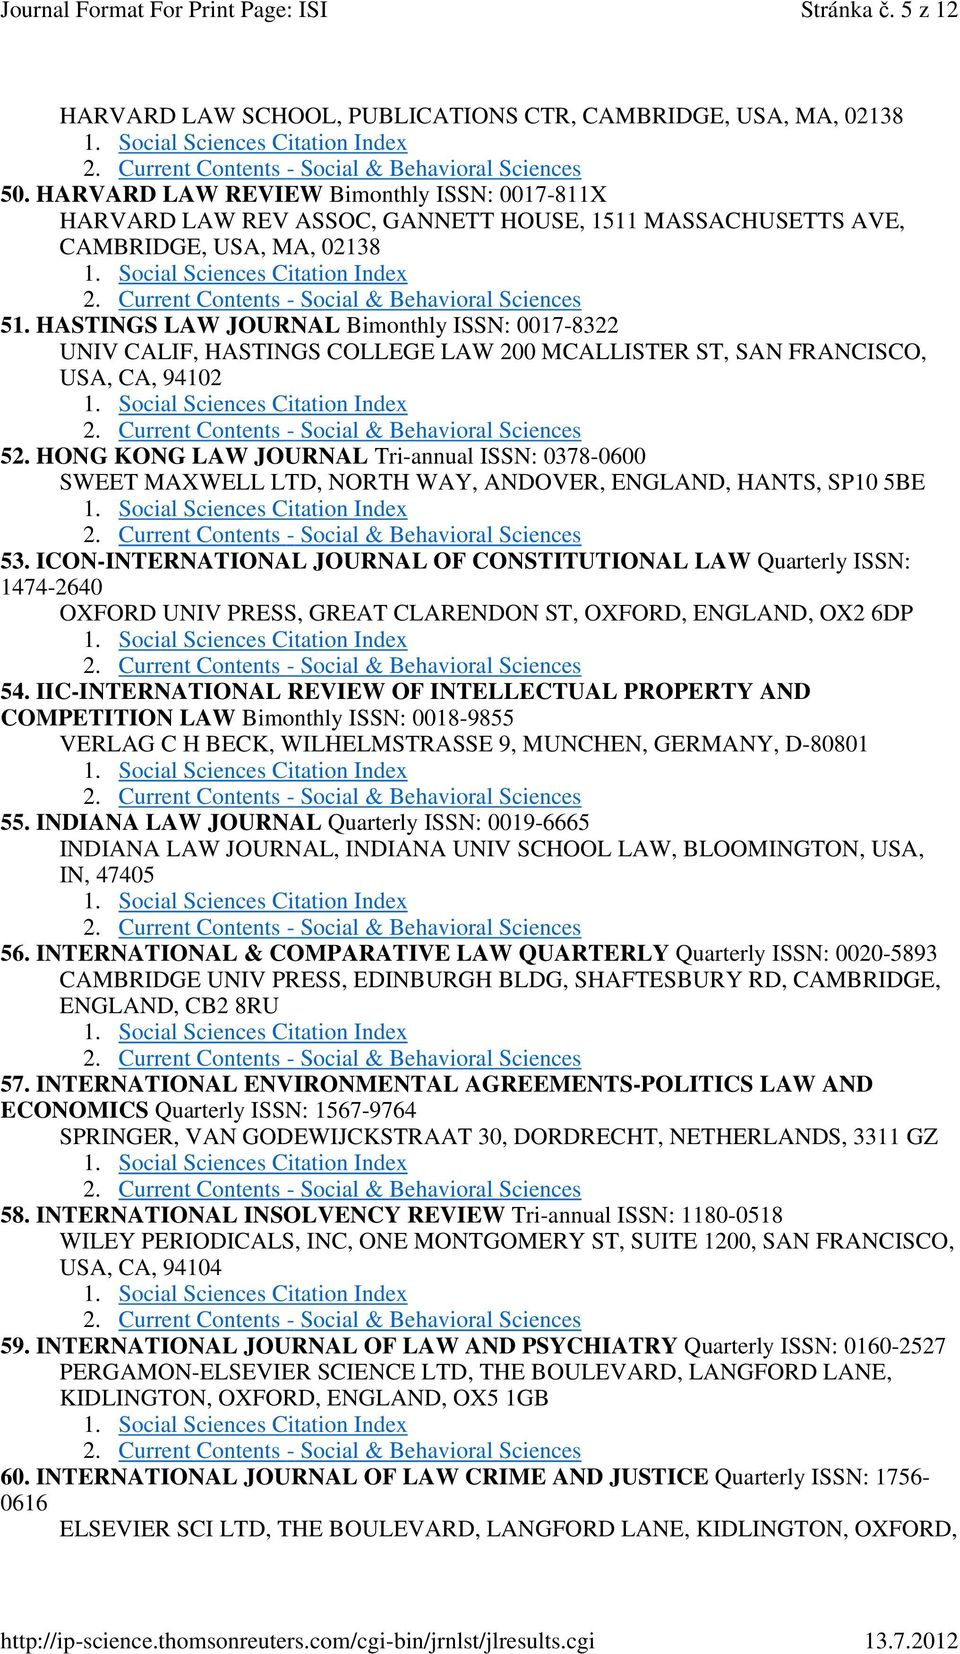 HASTINGS LAW JOURNAL Bimonthly ISSN: 0017-8322 UNIV CALIF, HASTINGS COLLEGE LAW 200 MCALLISTER ST, SAN FRANCISCO, USA, CA, 94102 52.